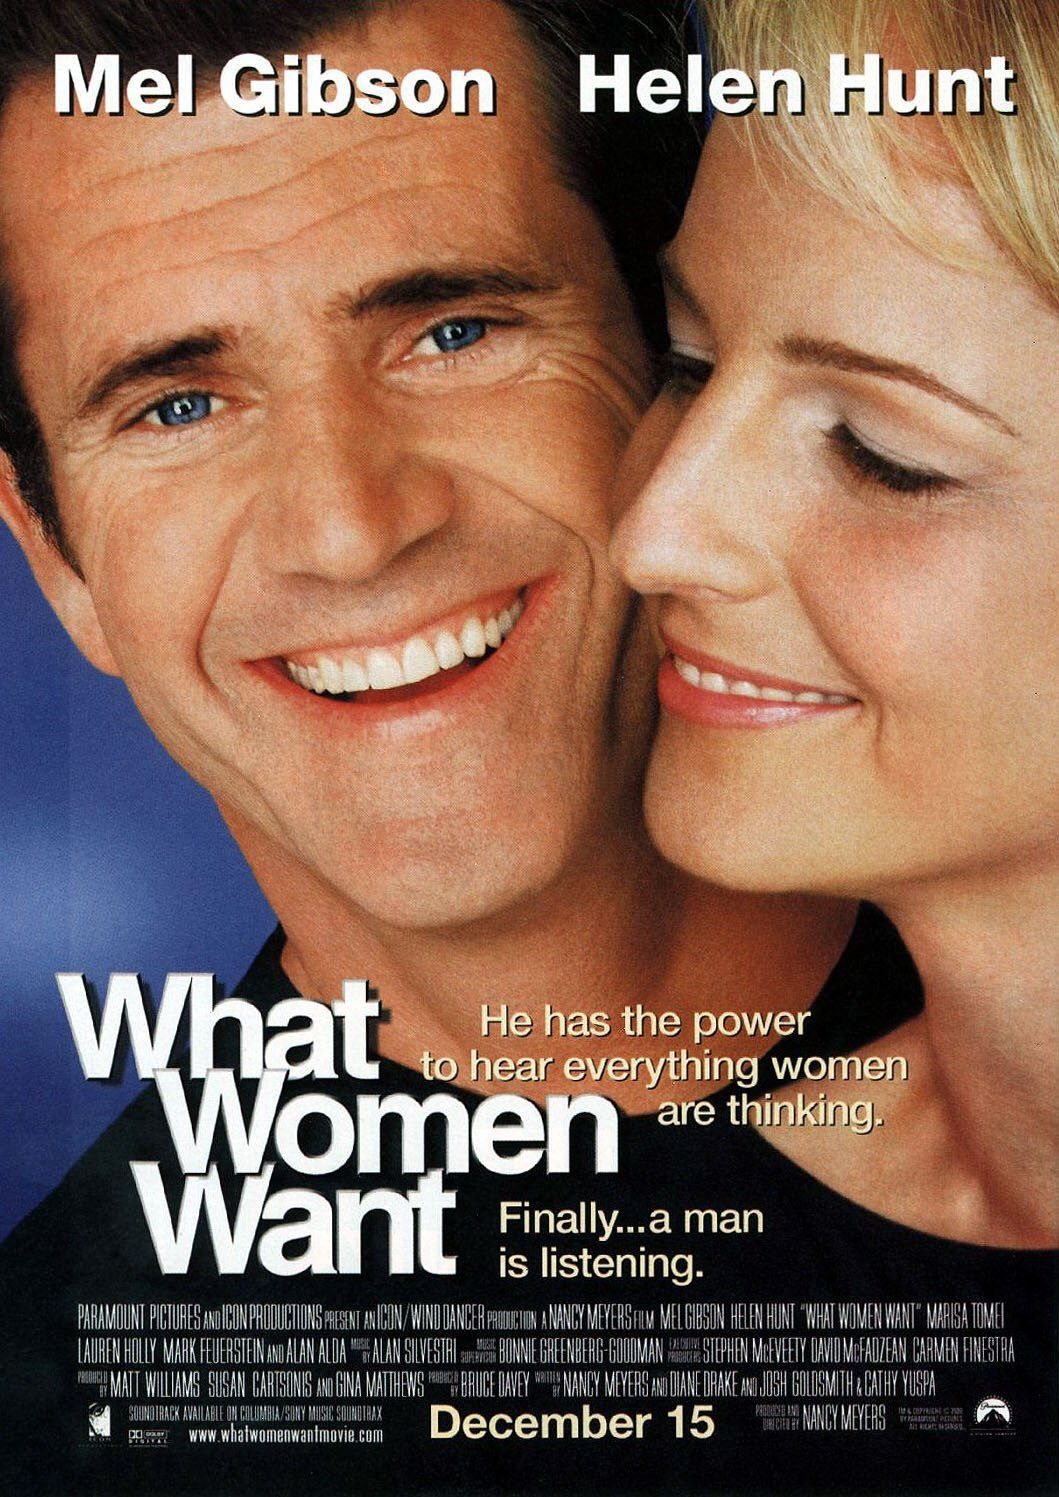 What Women Want - Quello che le Donne Vogliono - Mel Gibson - Helen Hunt - love film poster